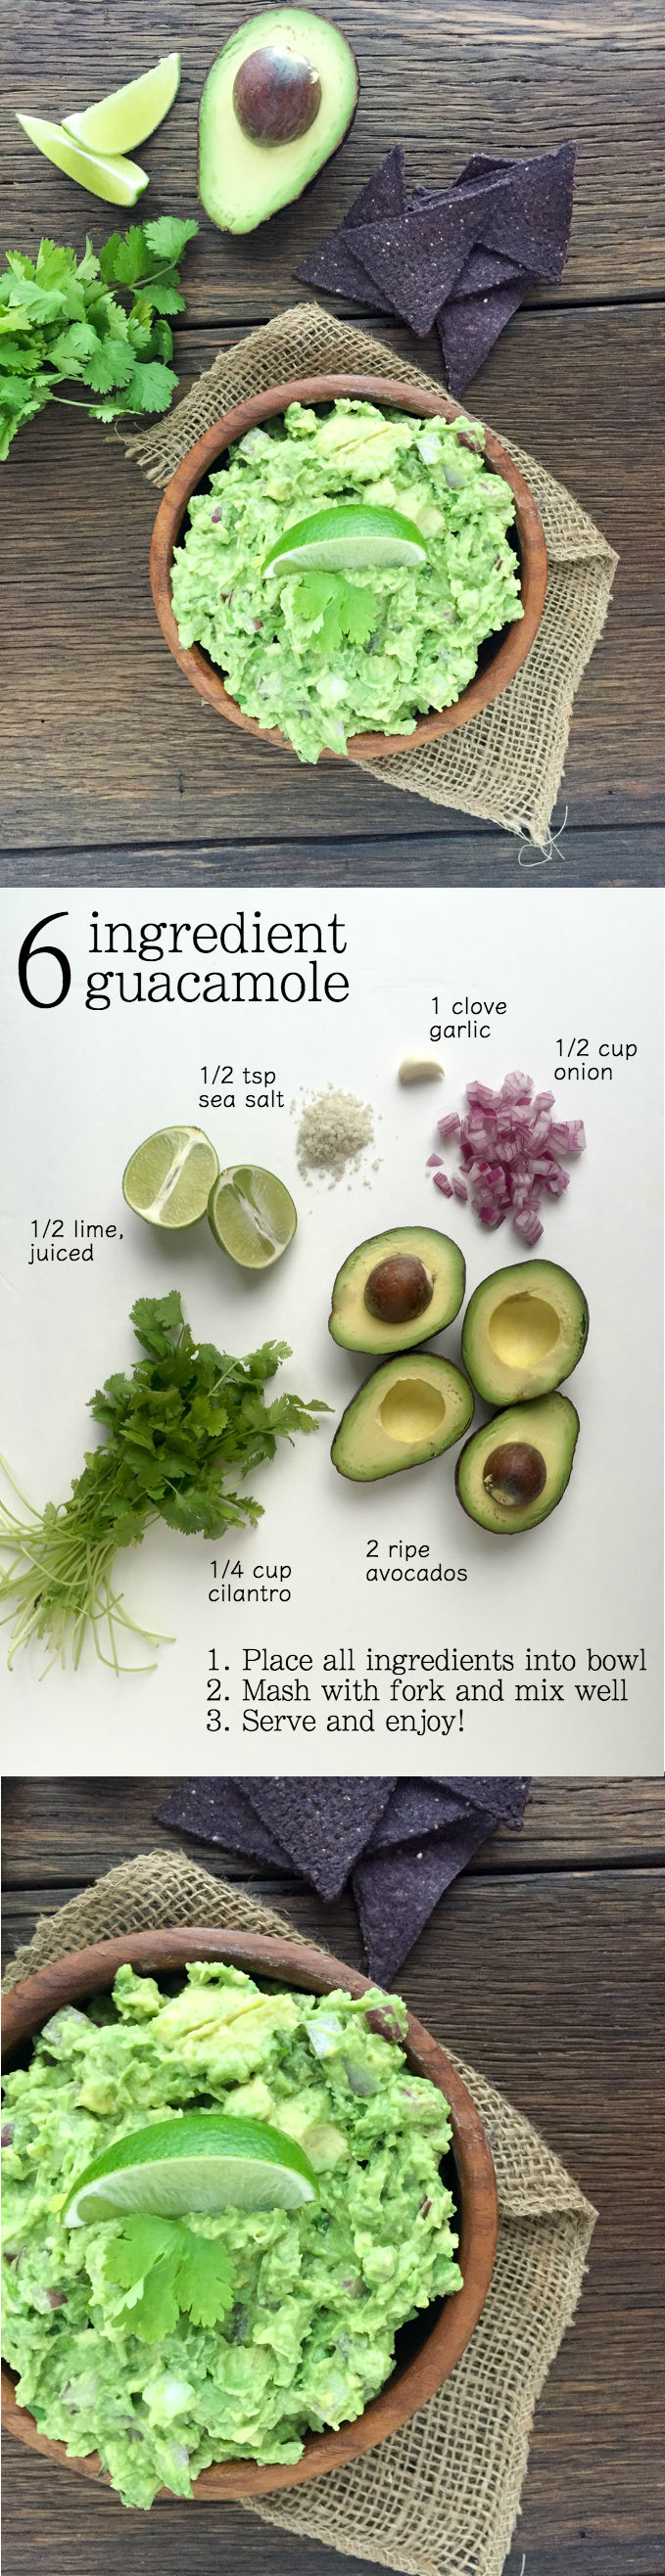 6 Ingredient Guacamole | A Slice of Ky